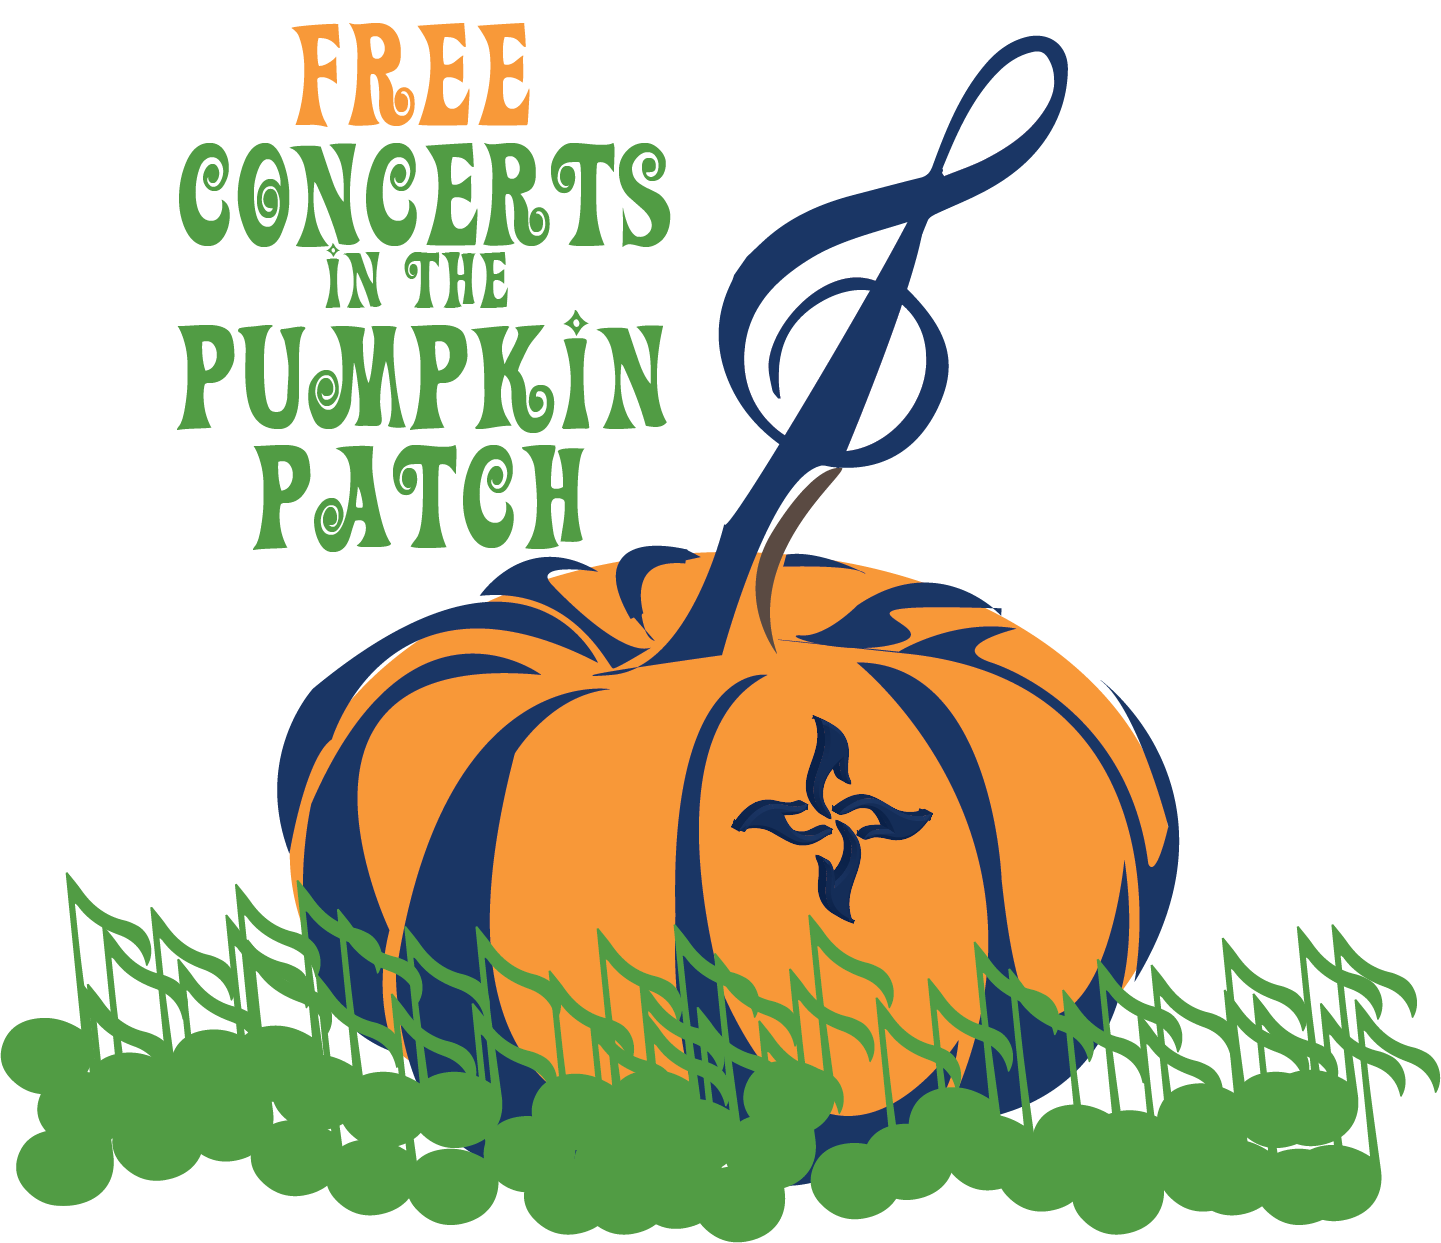 Free Concerts in the Pumpkin Patch